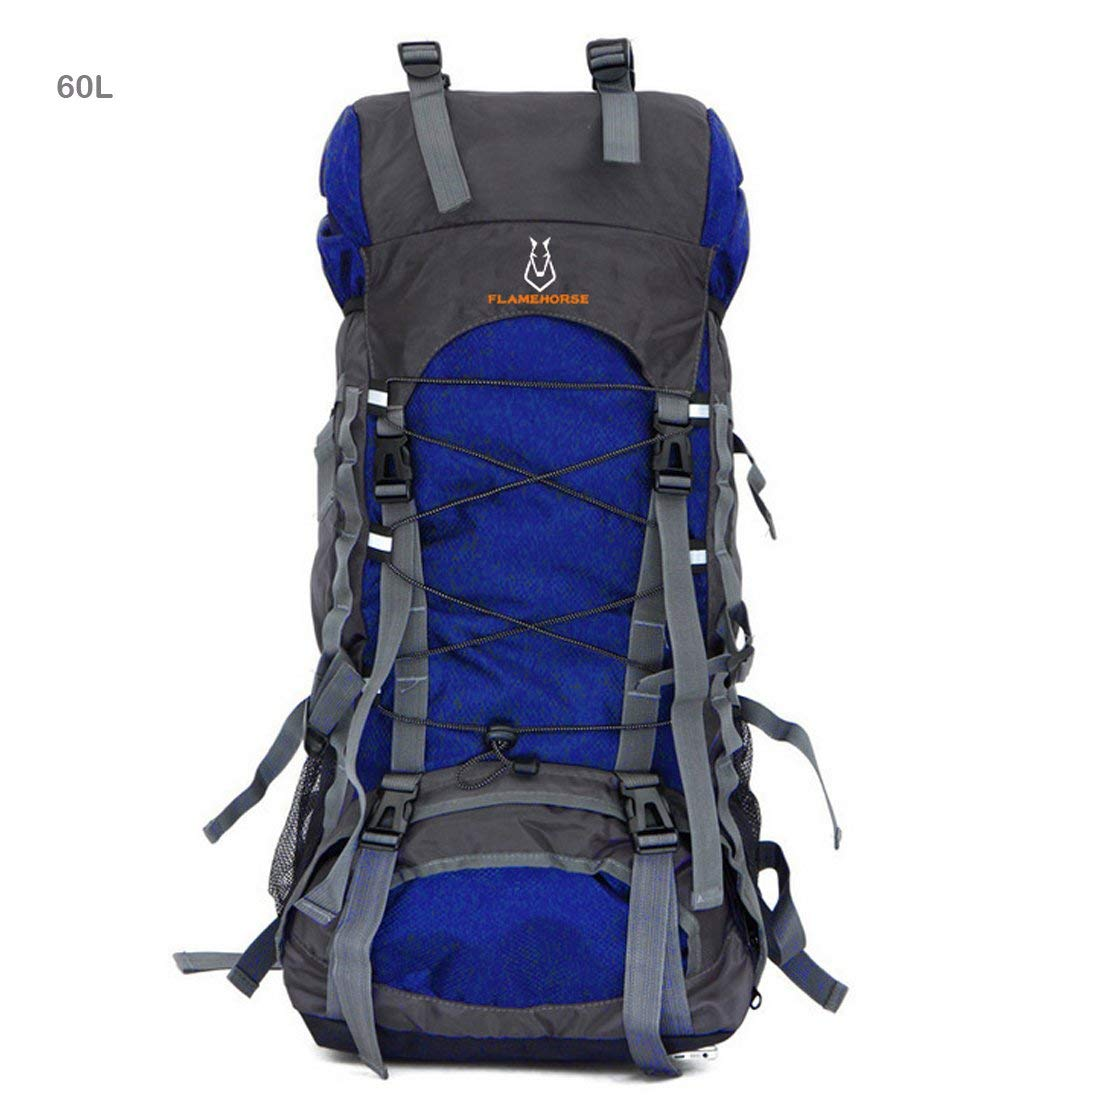 AWADUO 60L Internal Frame Backpack Hiking Backpacking Packs for Outdoor Hiking Travel Climbing Camping Mountaineering with Rain Cover(Royal Blue) [並行輸入品] B07R4TNY45